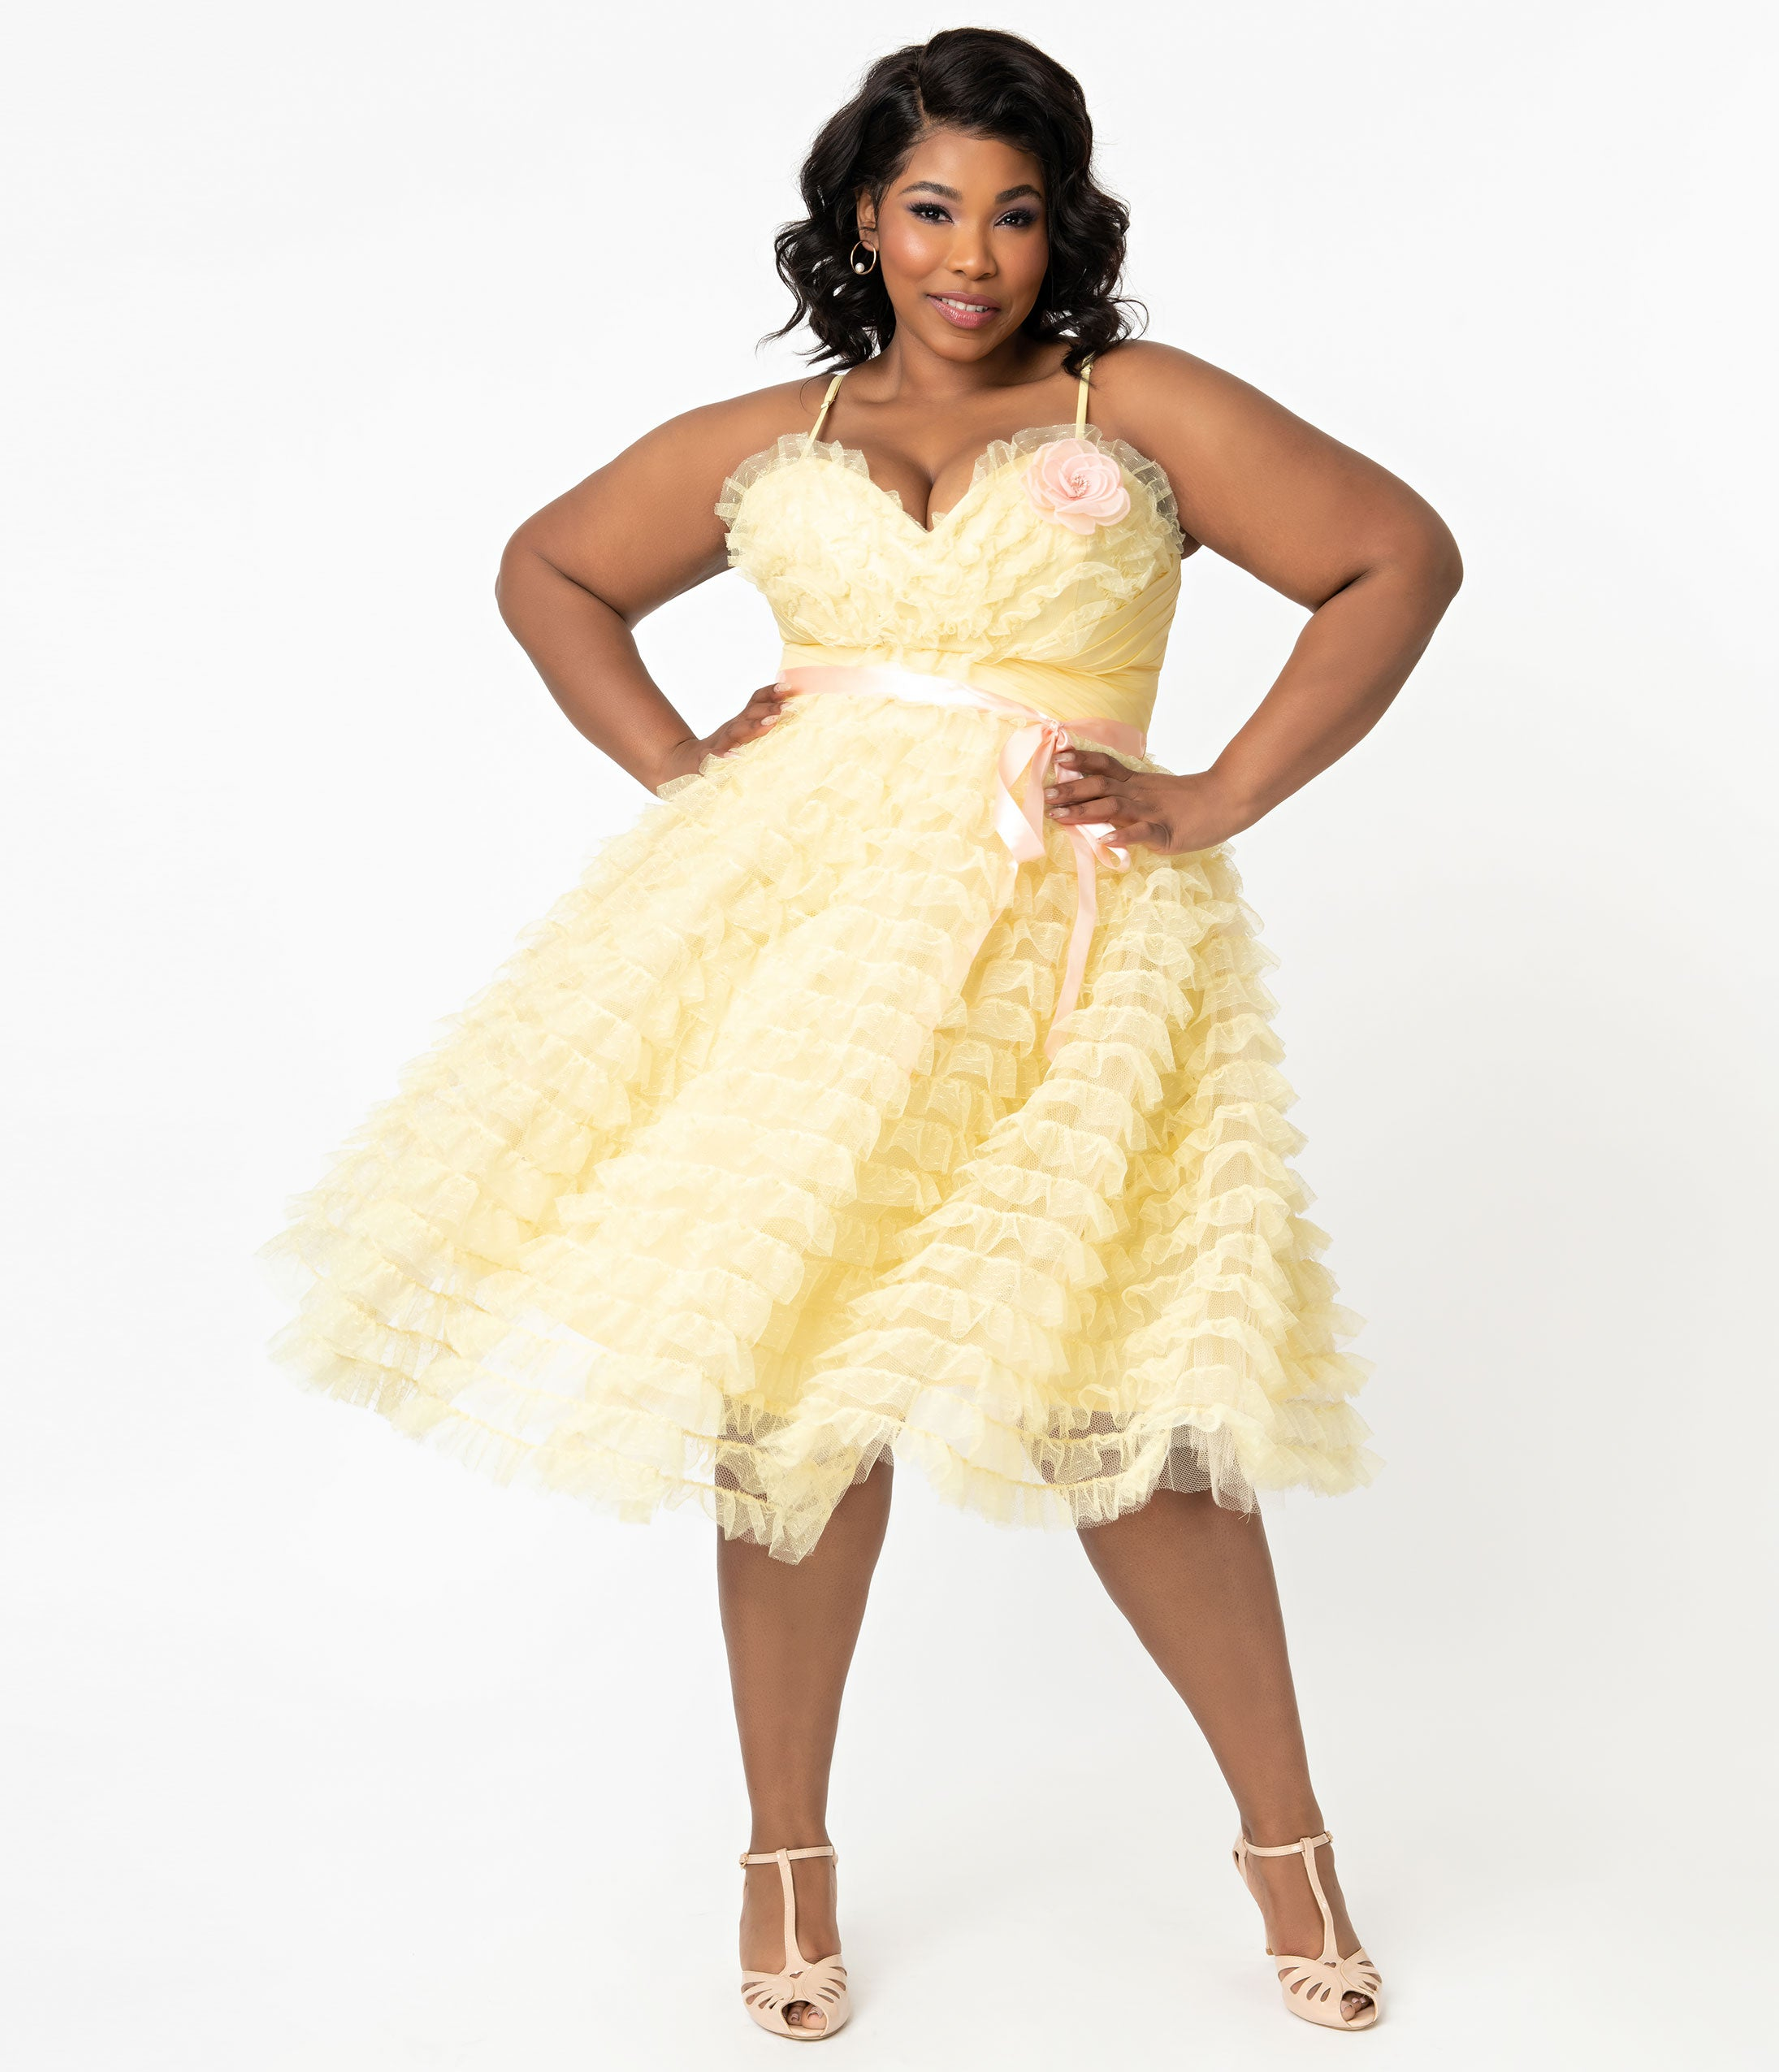 1950s Plus Size Dresses, Swing Dresses Grease X Unique Vintage Plus Size Yellow Tulle Frenchy Swing Dress $148.00 AT vintagedancer.com